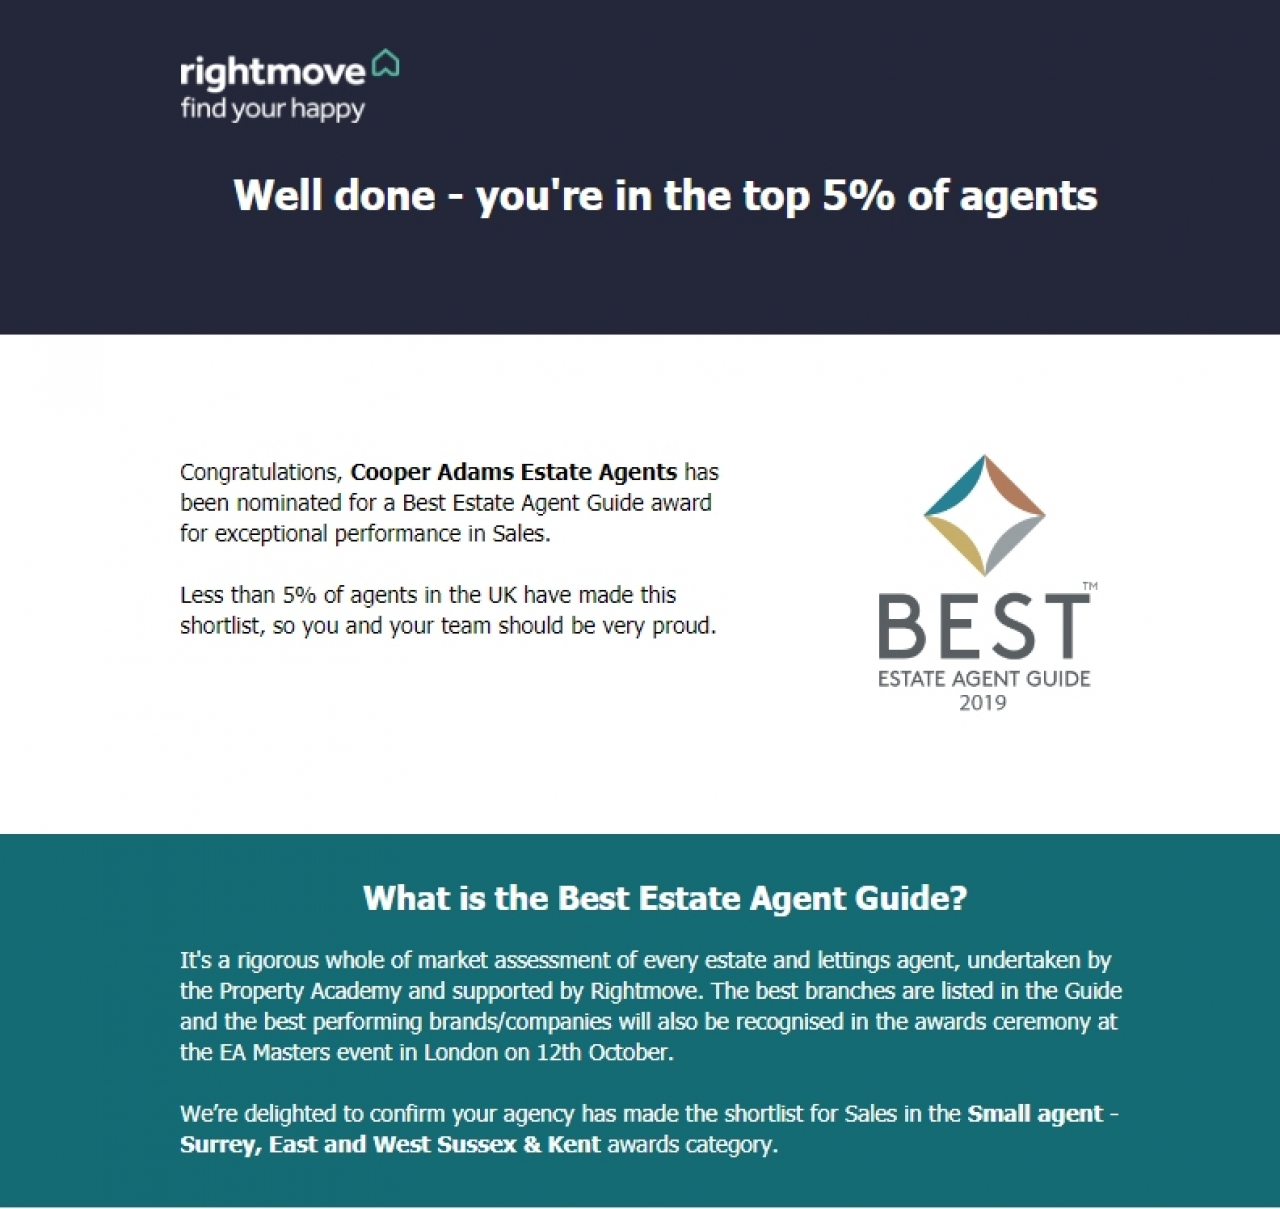 Best Estate Agent Guide 2019